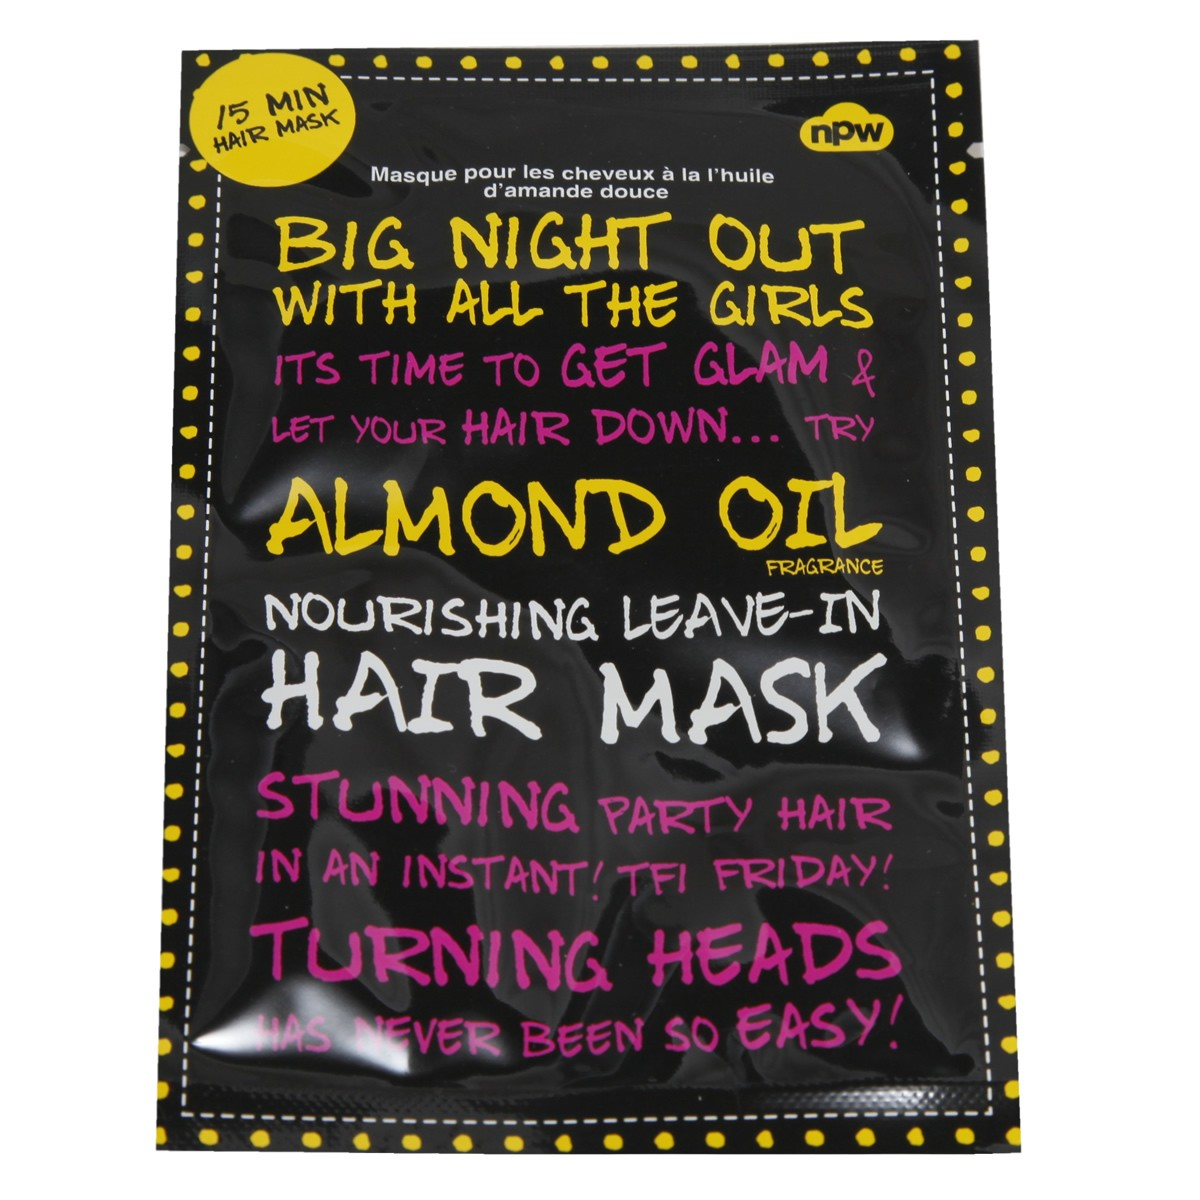 NPW Nourishing Leave-in Hair Mask with Almond Oil